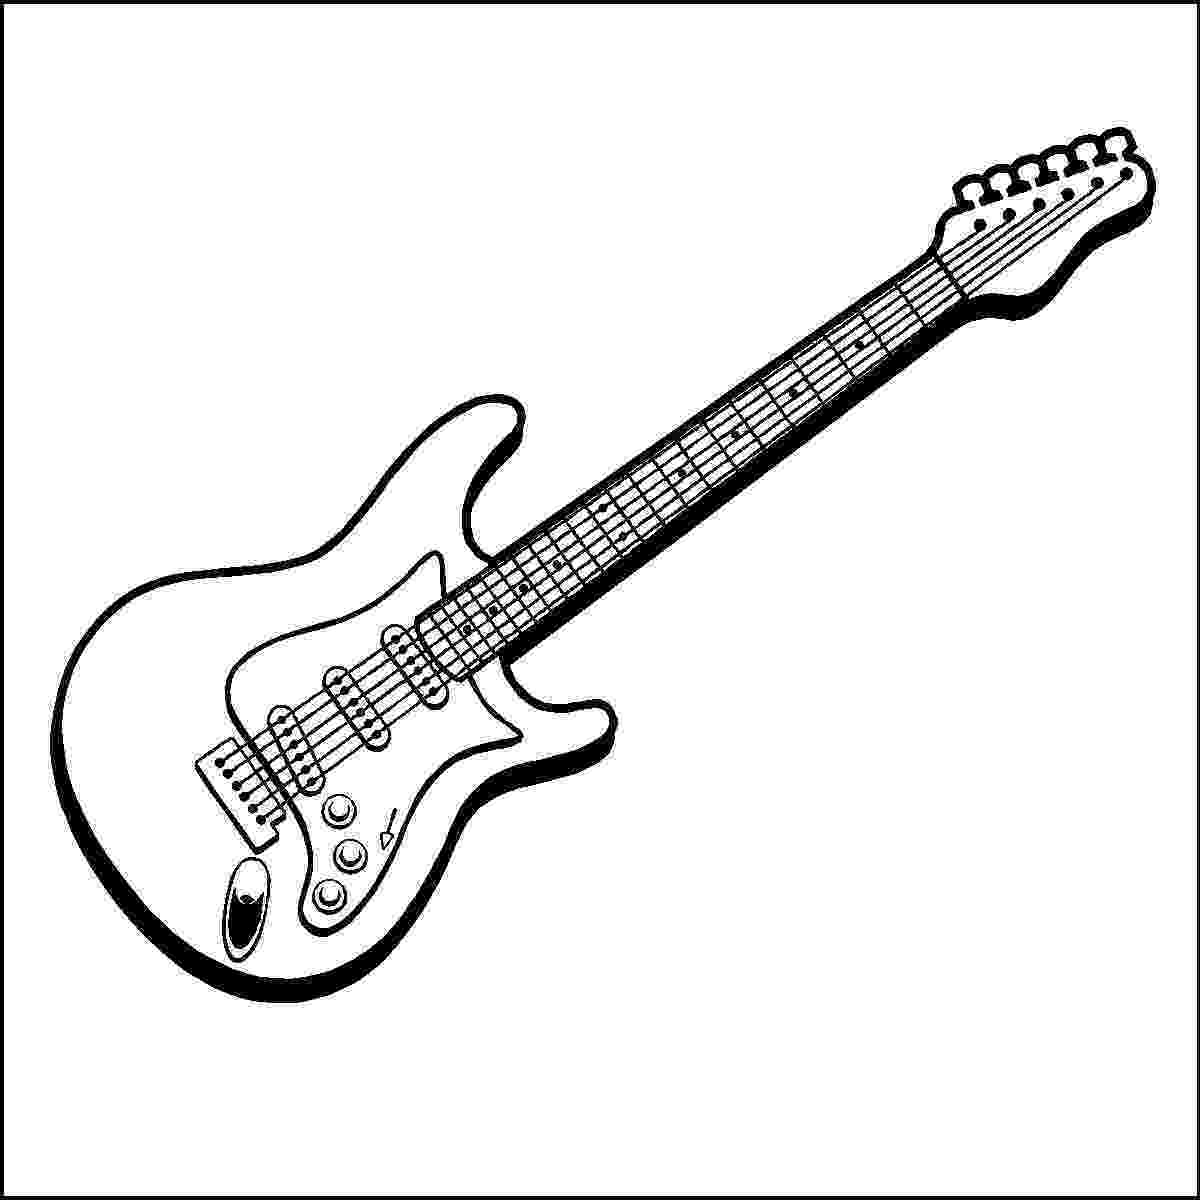 cool guitar coloring pages free printable coloring page for your kids page 35 guitar cool coloring pages